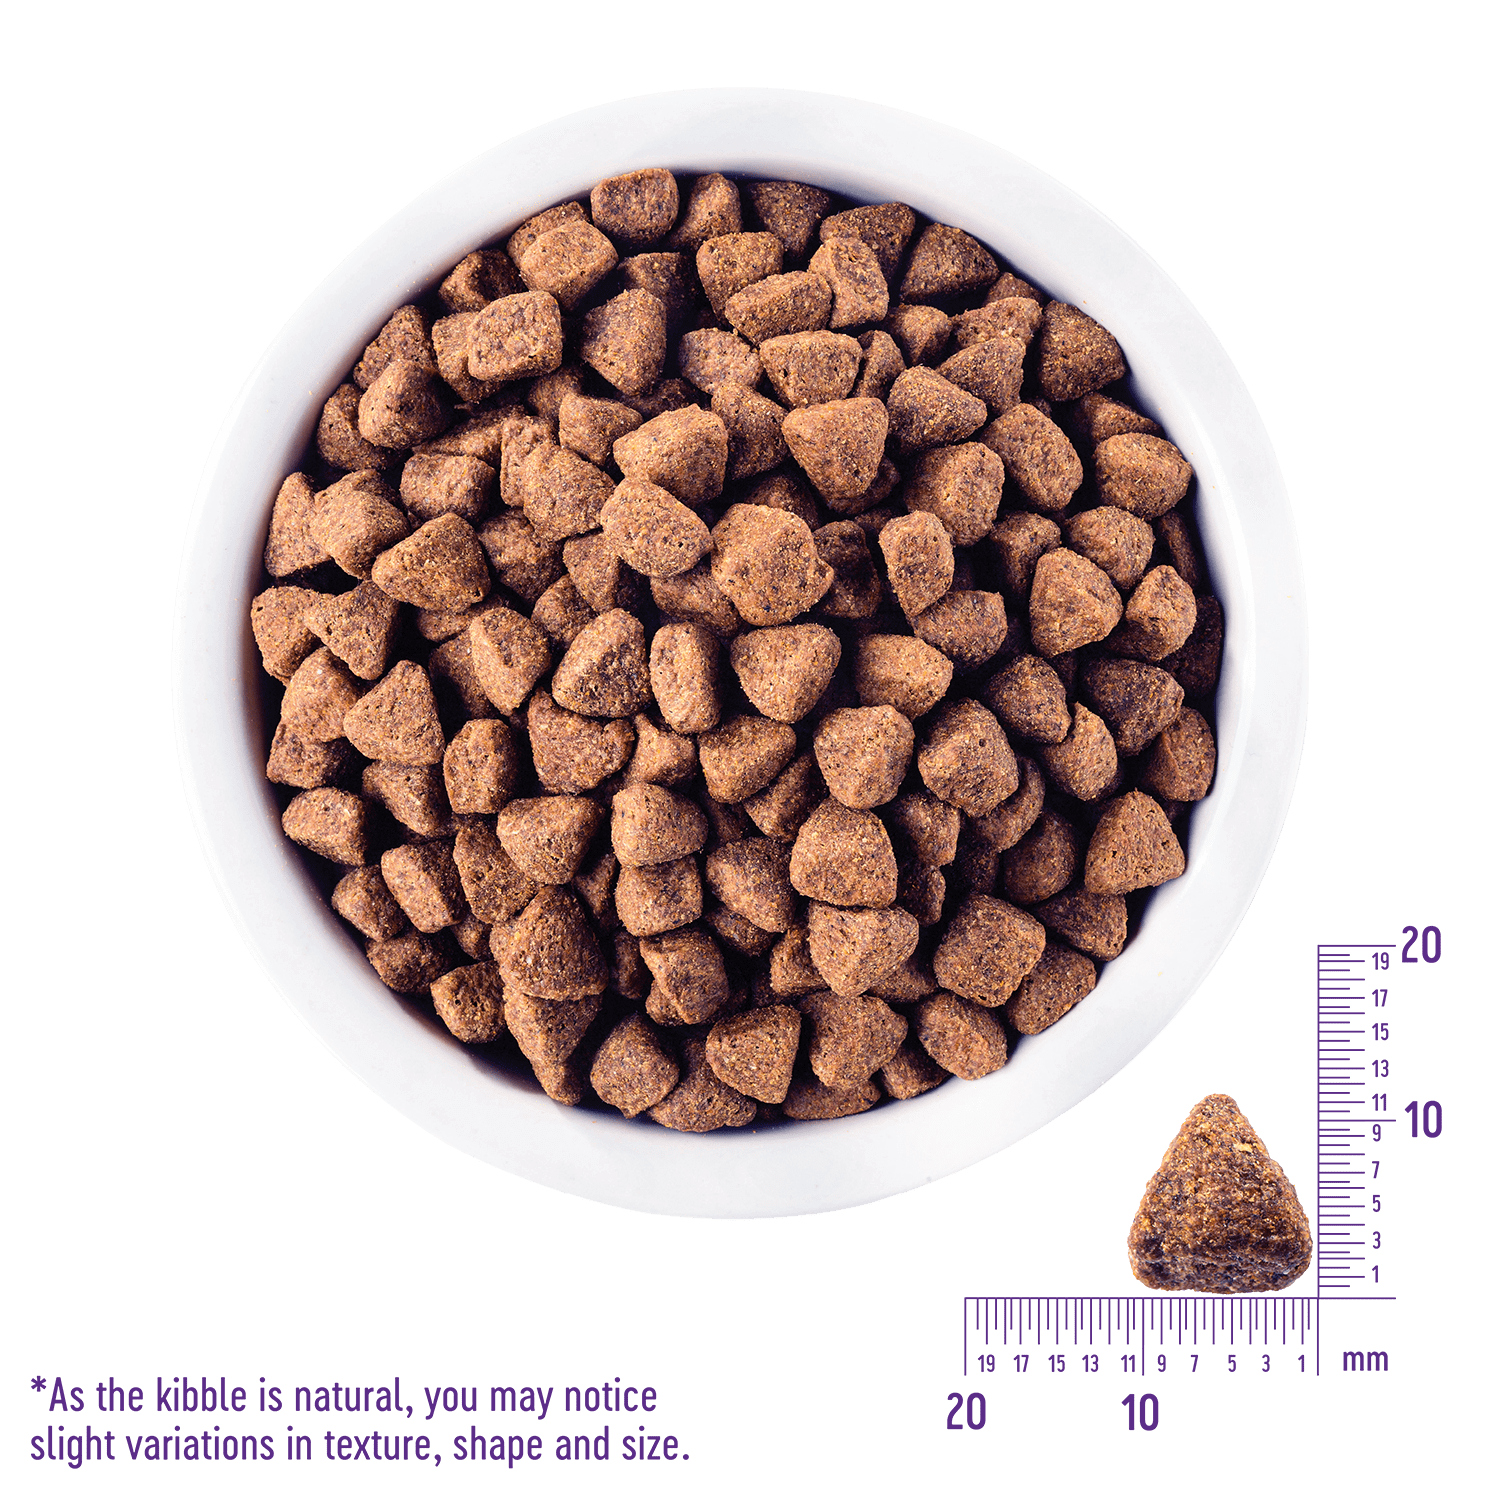 CORE Original High Protein Dry Dog Food | Wellness Pet Food